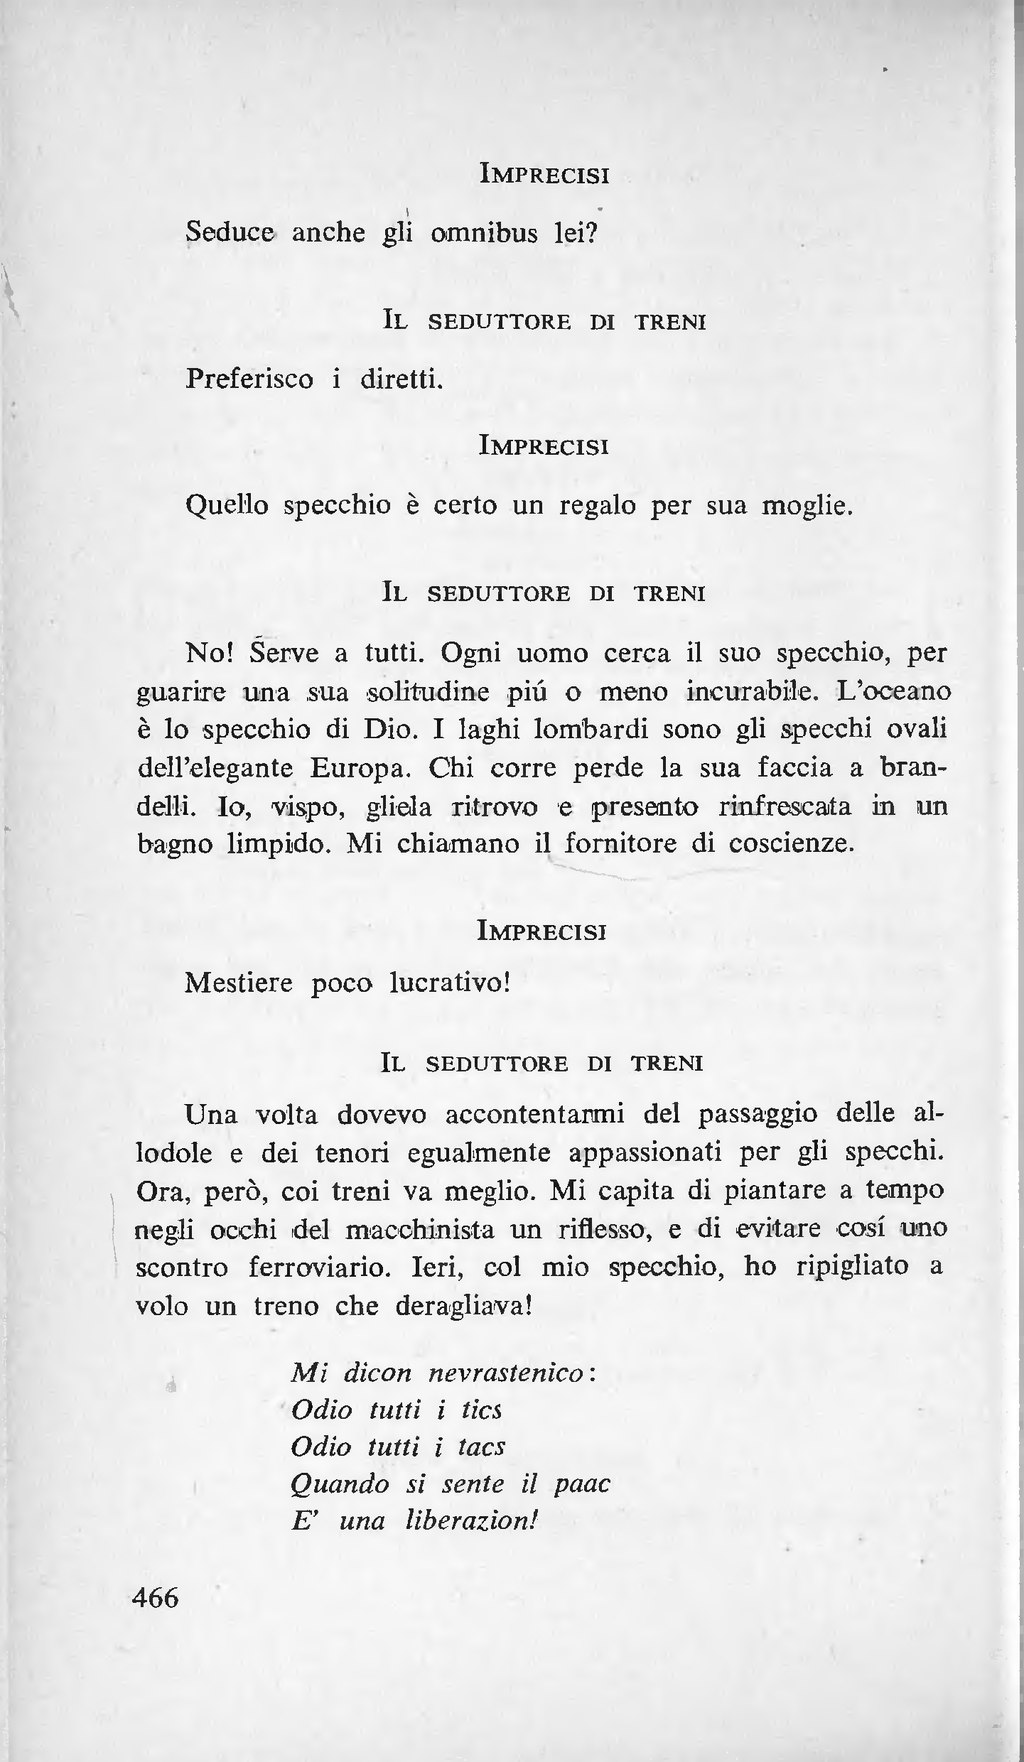 Pagina marinetti wikisource - Specchi per allodole ...